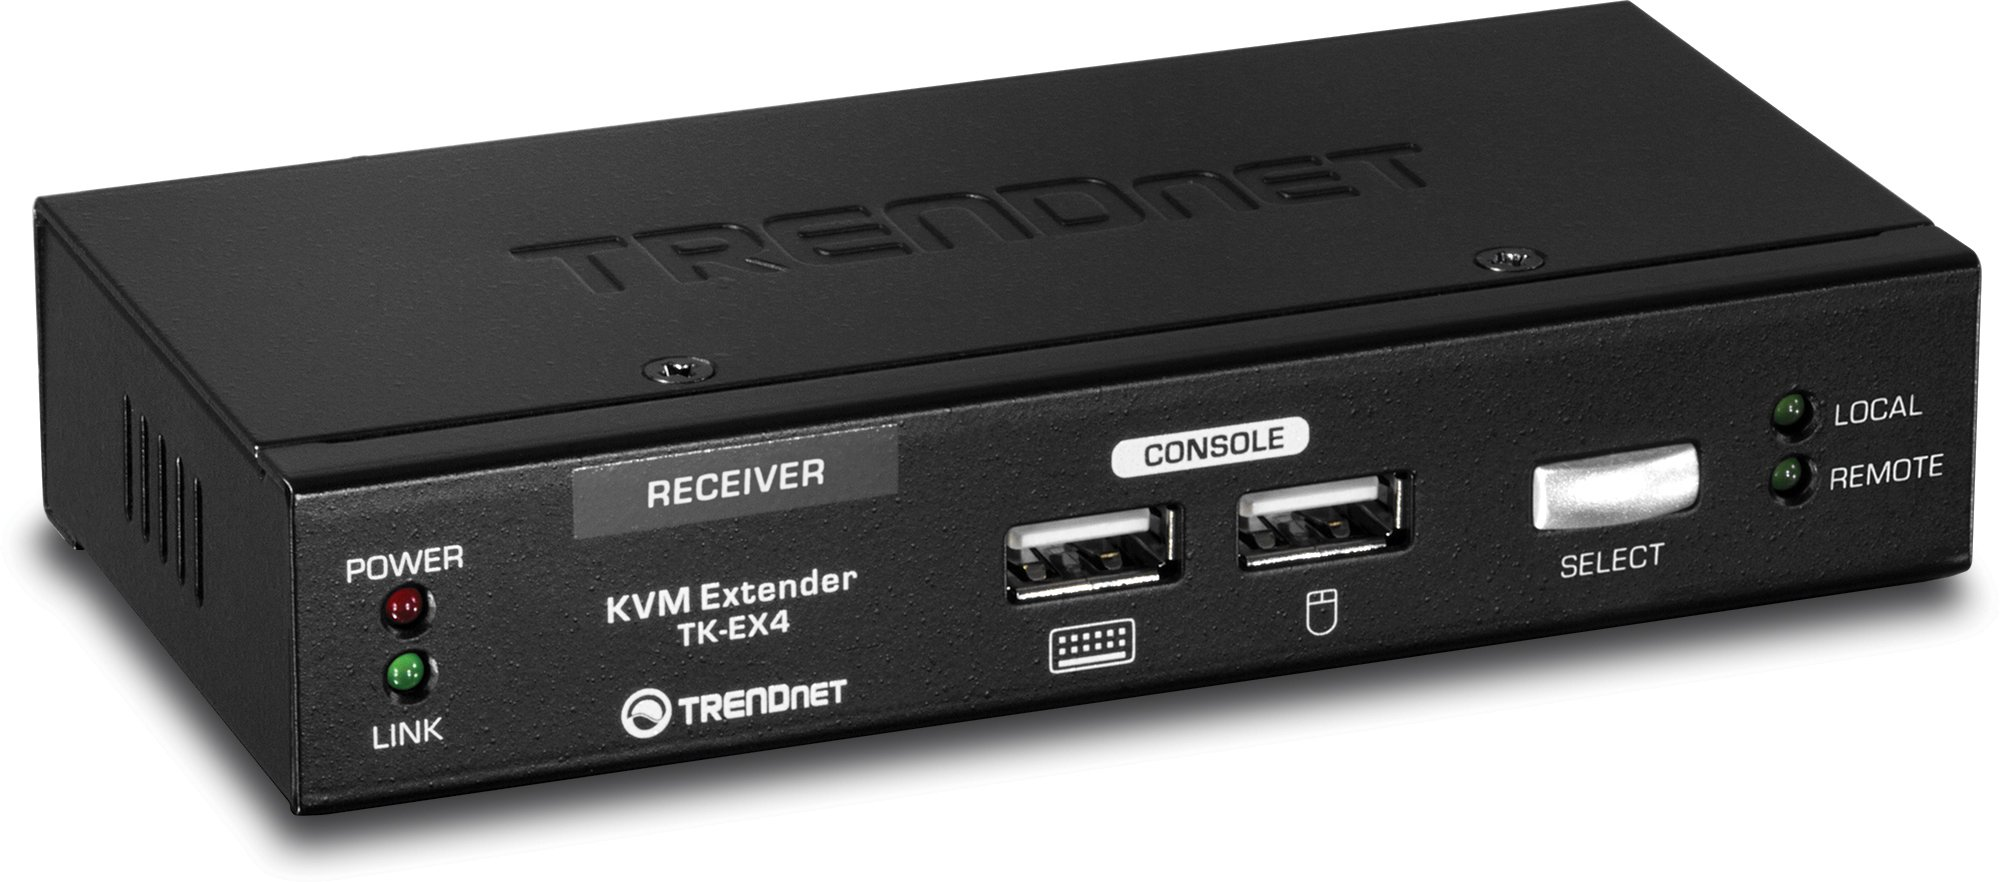 TRENDnet 1080P KVM Console Extension Kit up to 100 Meters (328 ft.), TK-EX4 by TRENDnet